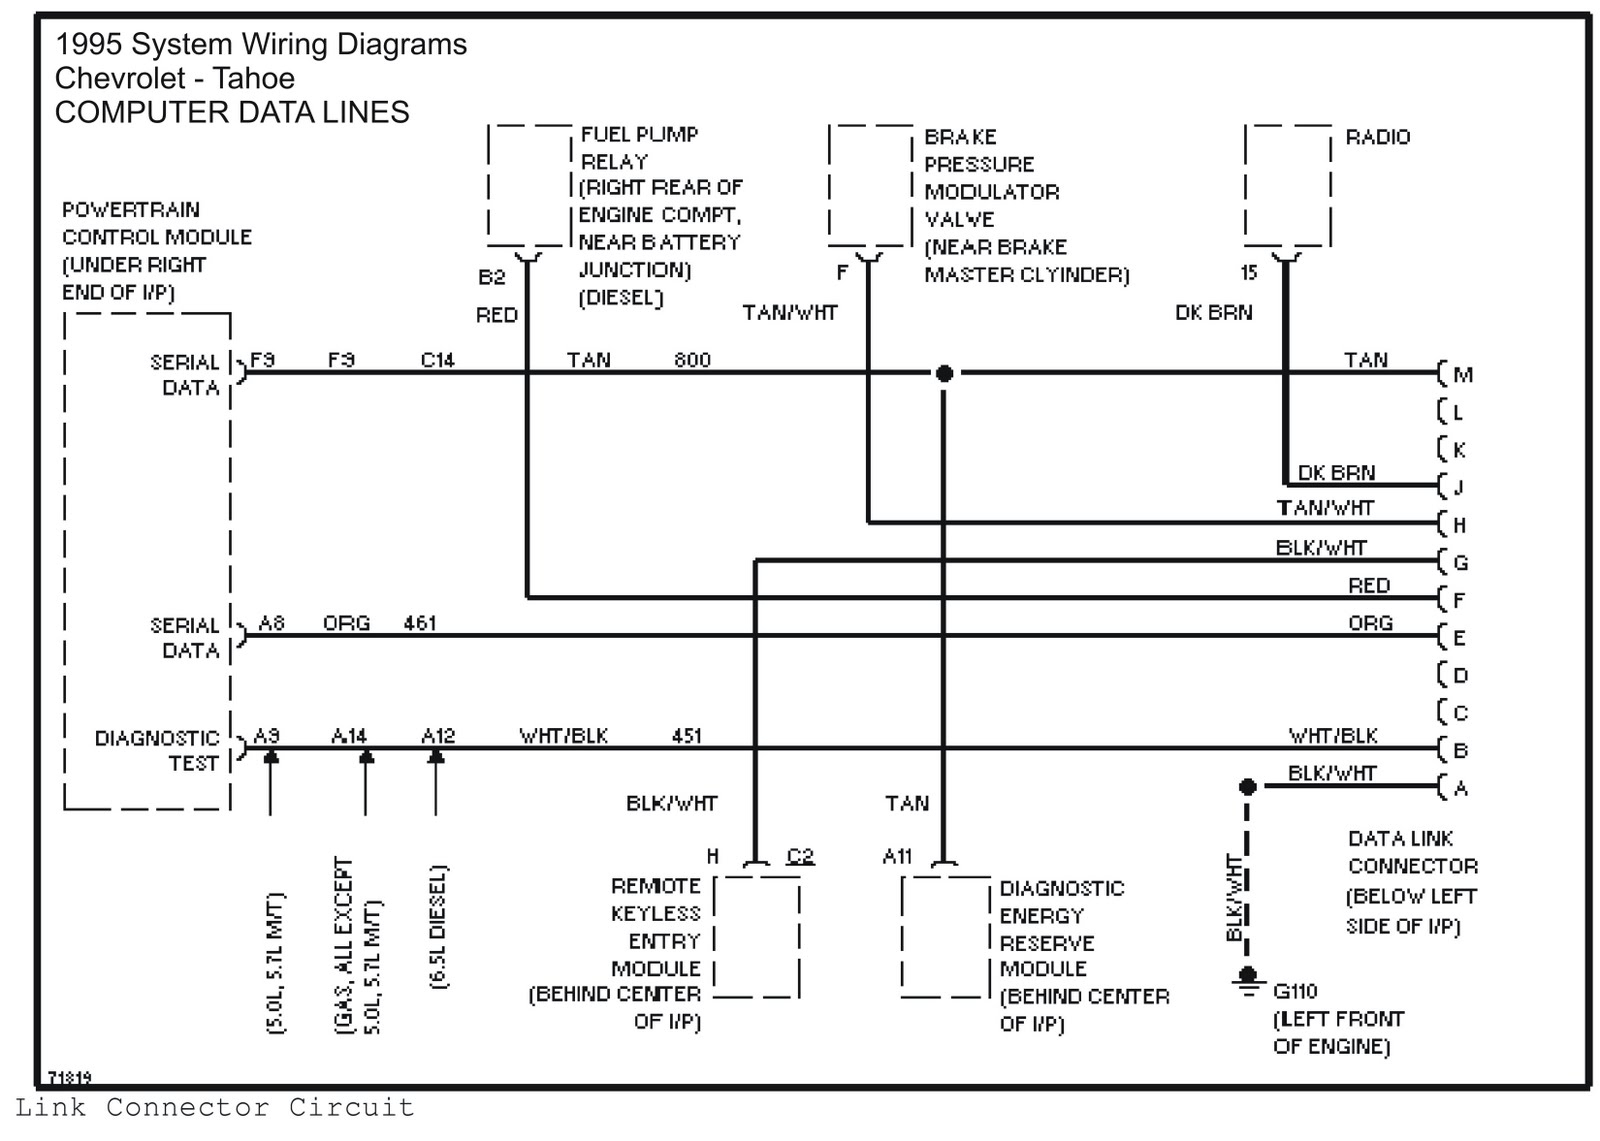 Tahoe Trailer Wiring Diagram - Wiring Diagram Explained - 2001 Silverado Trailer Wiring Diagram